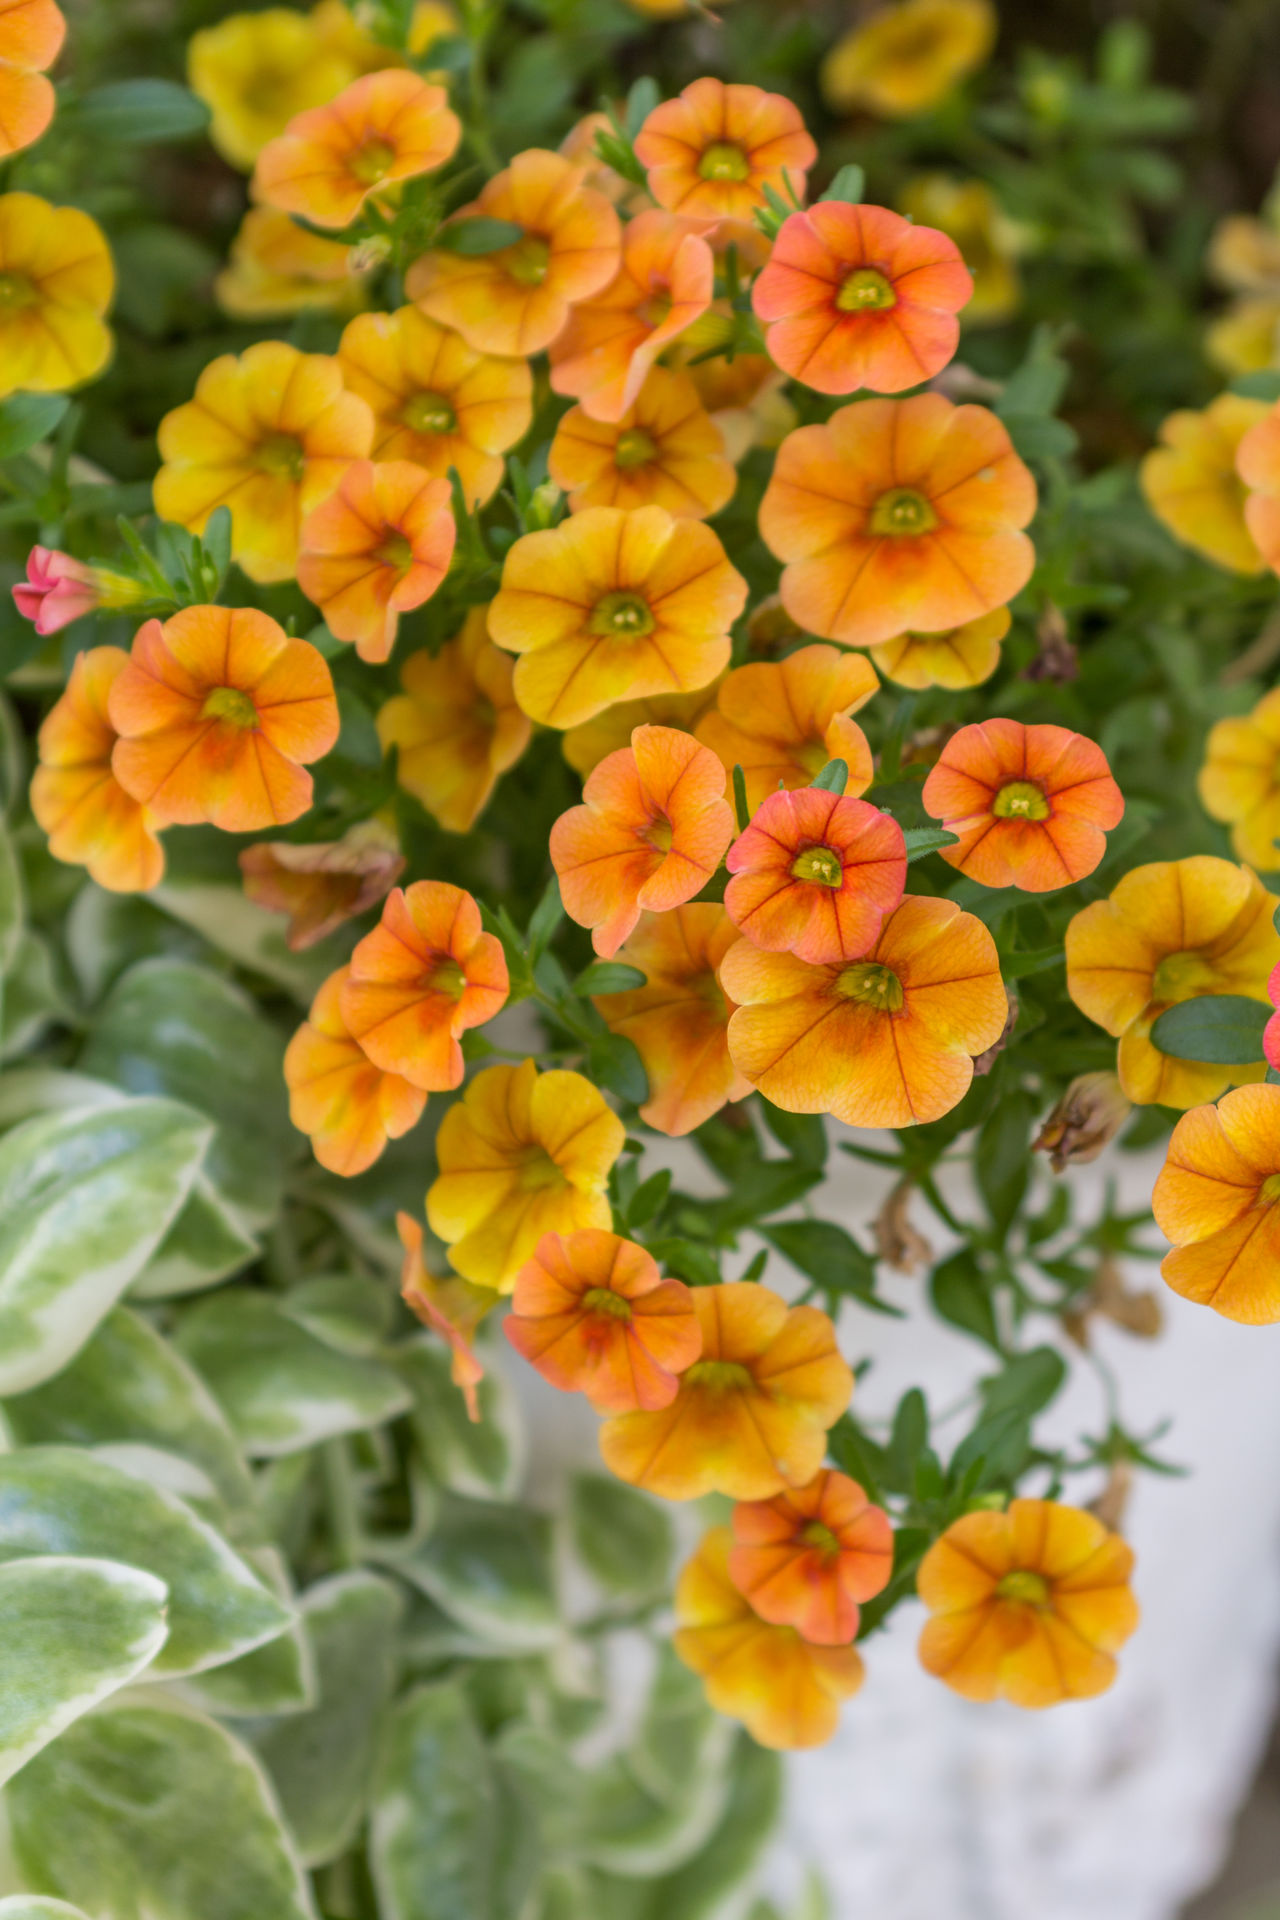 Vased pansies Bright And Cheery Close-up Colorful Nature Fresh Orange And Yellow Orange And Yellow Flower Pansies Potted Flowers White Vase Container Gardening Container Plants